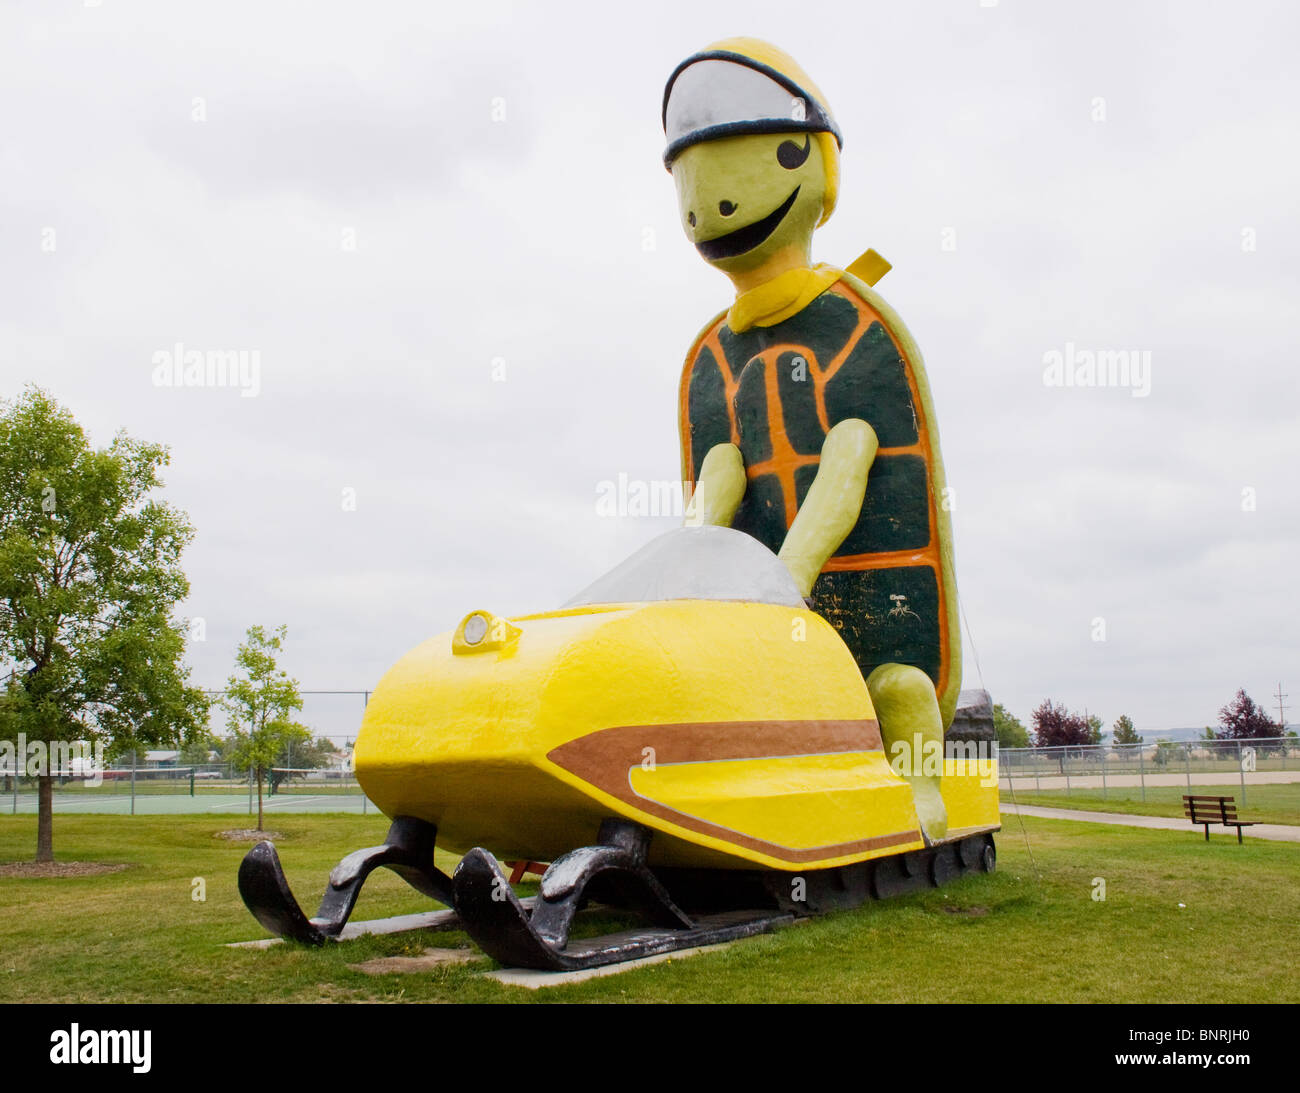 Giant Turtle Riding Snowmobile in Bottineau North Dakota Stock Photo